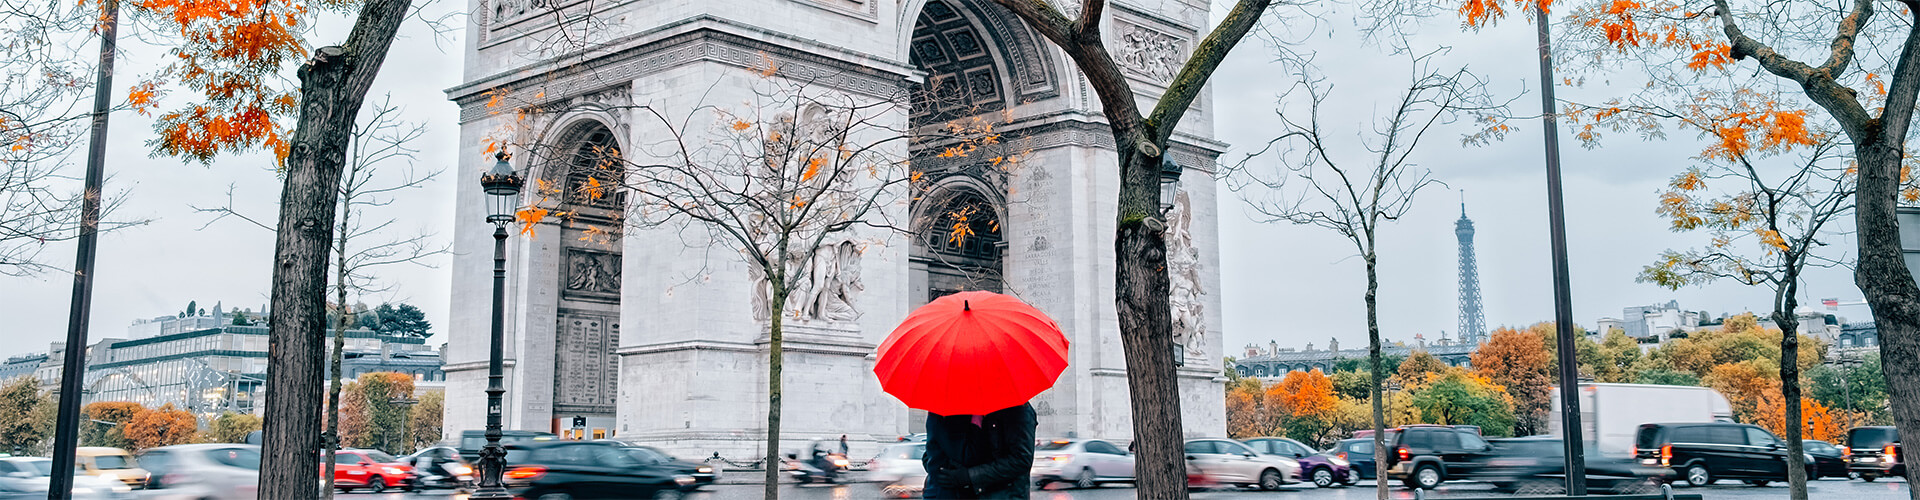 Couple in Paris under umbrella in front of the Arc de Triomphe